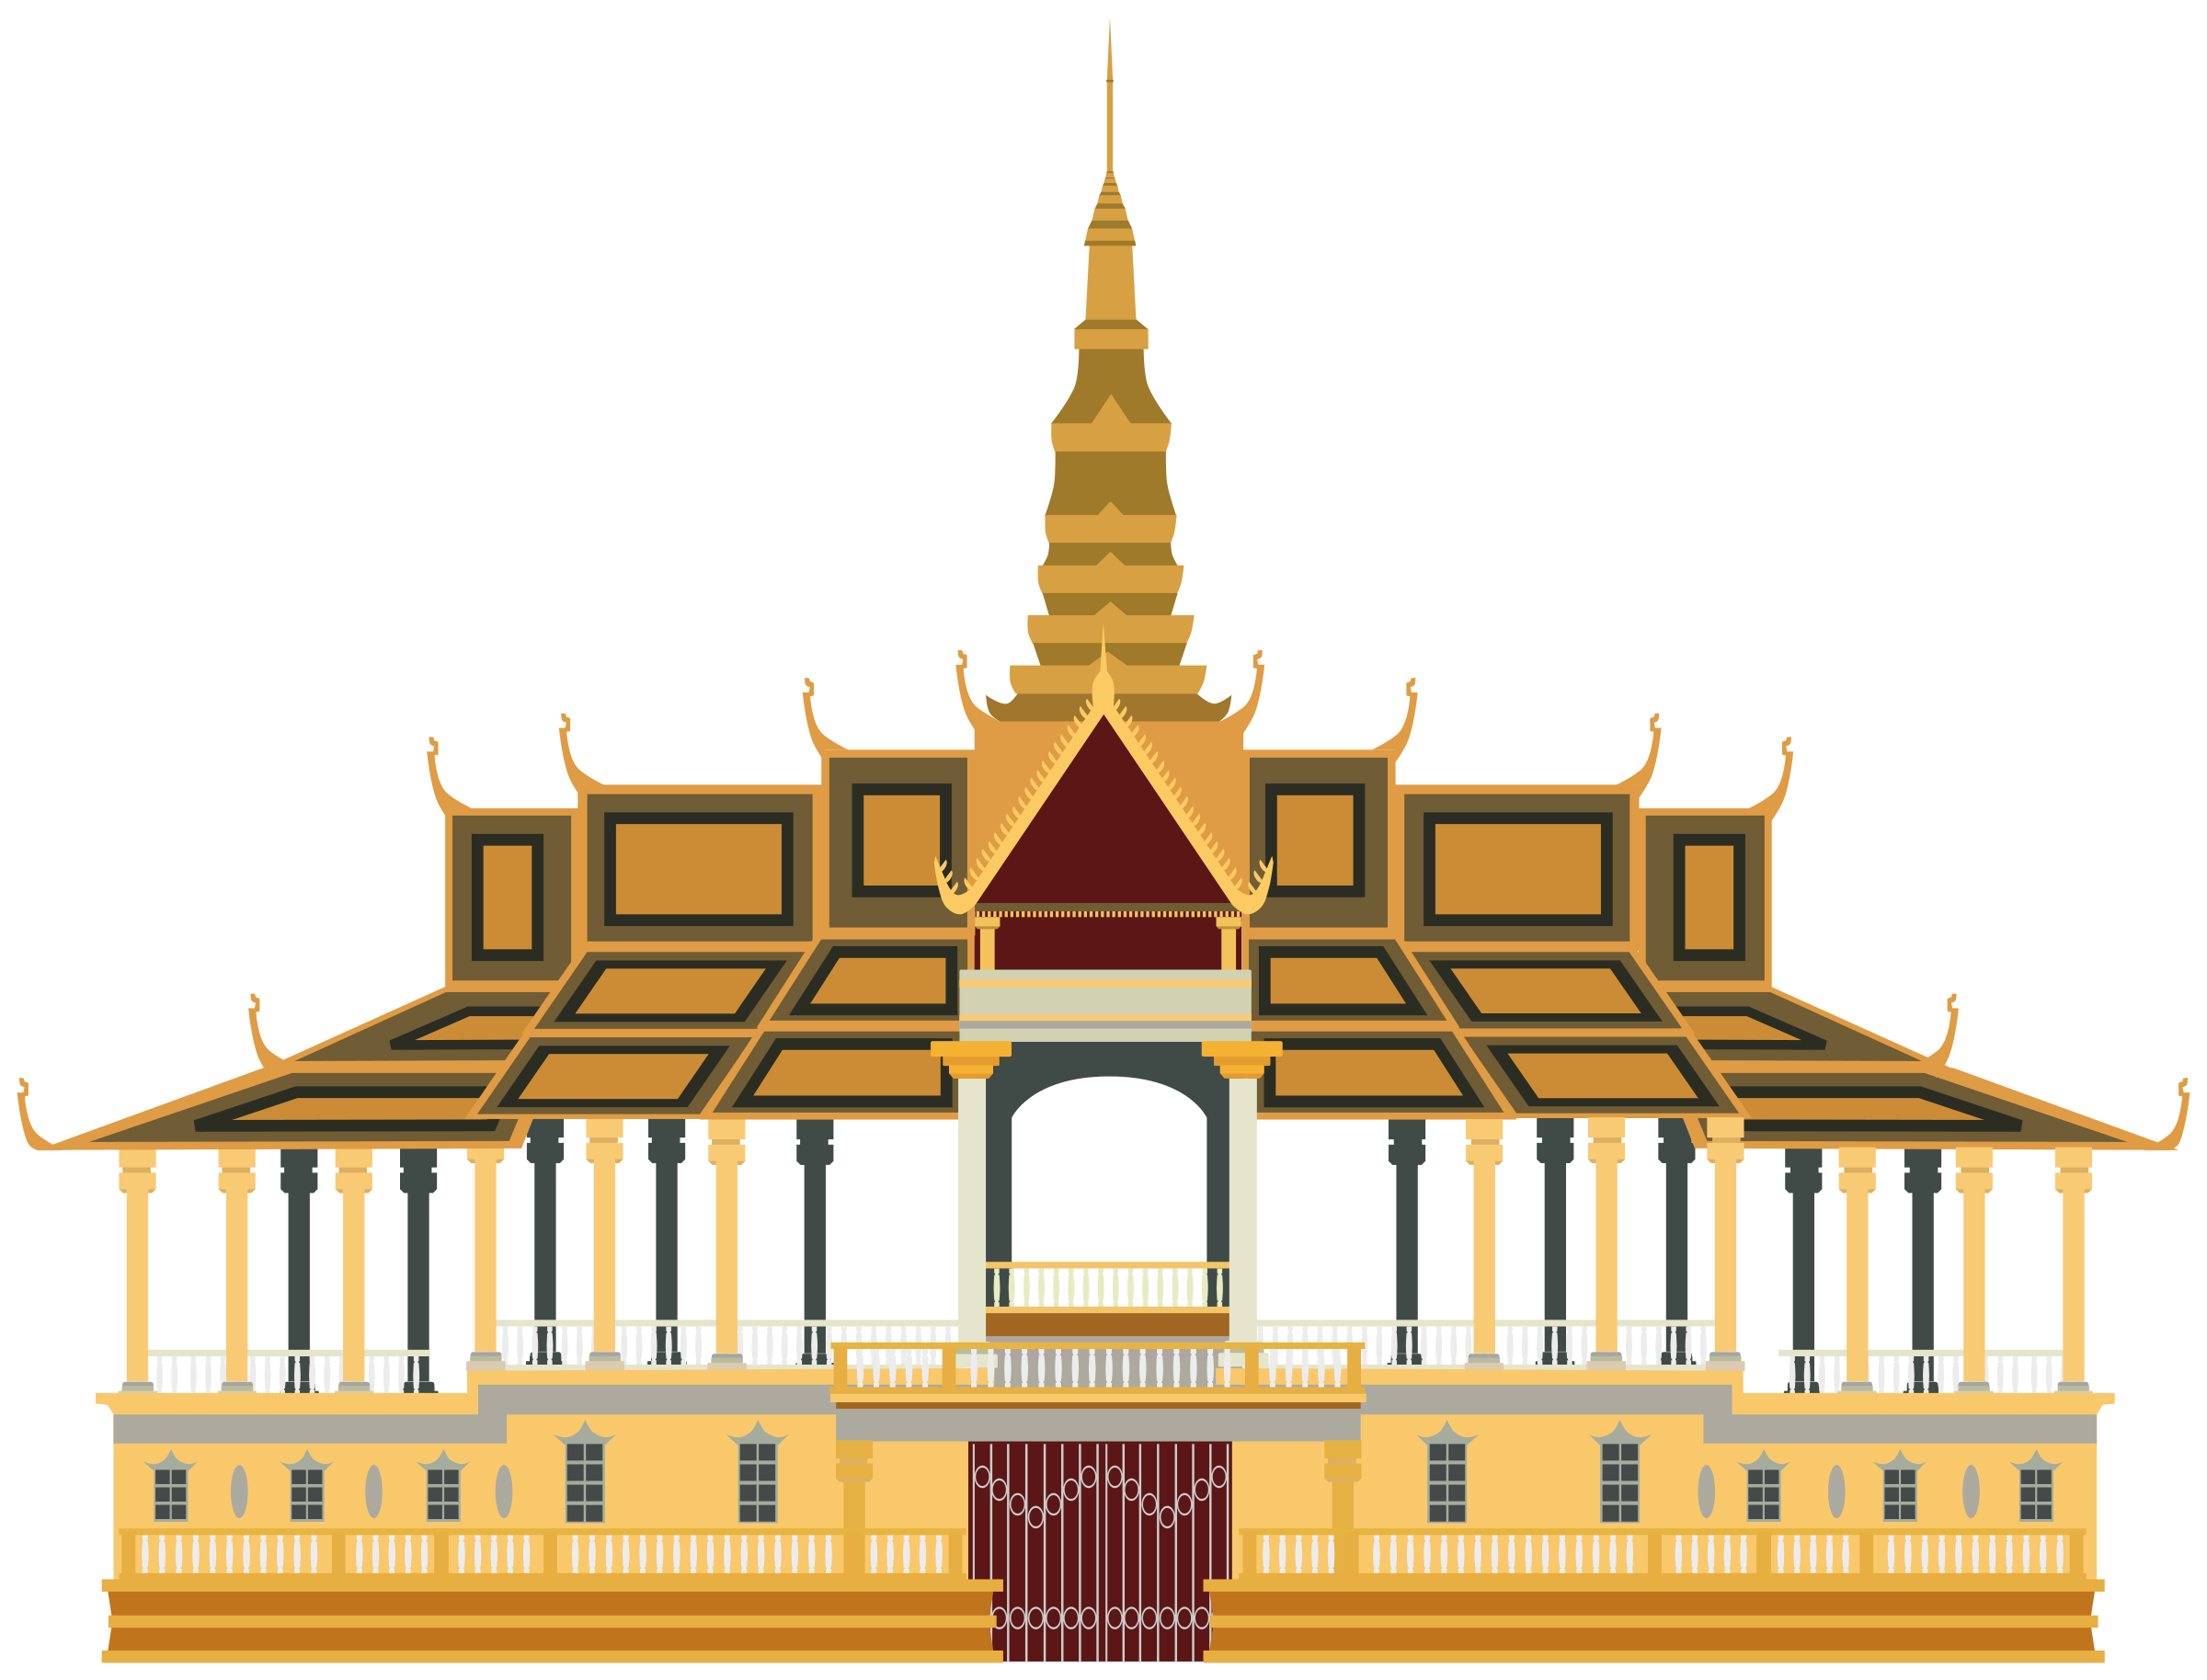 Temple clipart cambodian temple. Royal palace phnom penh